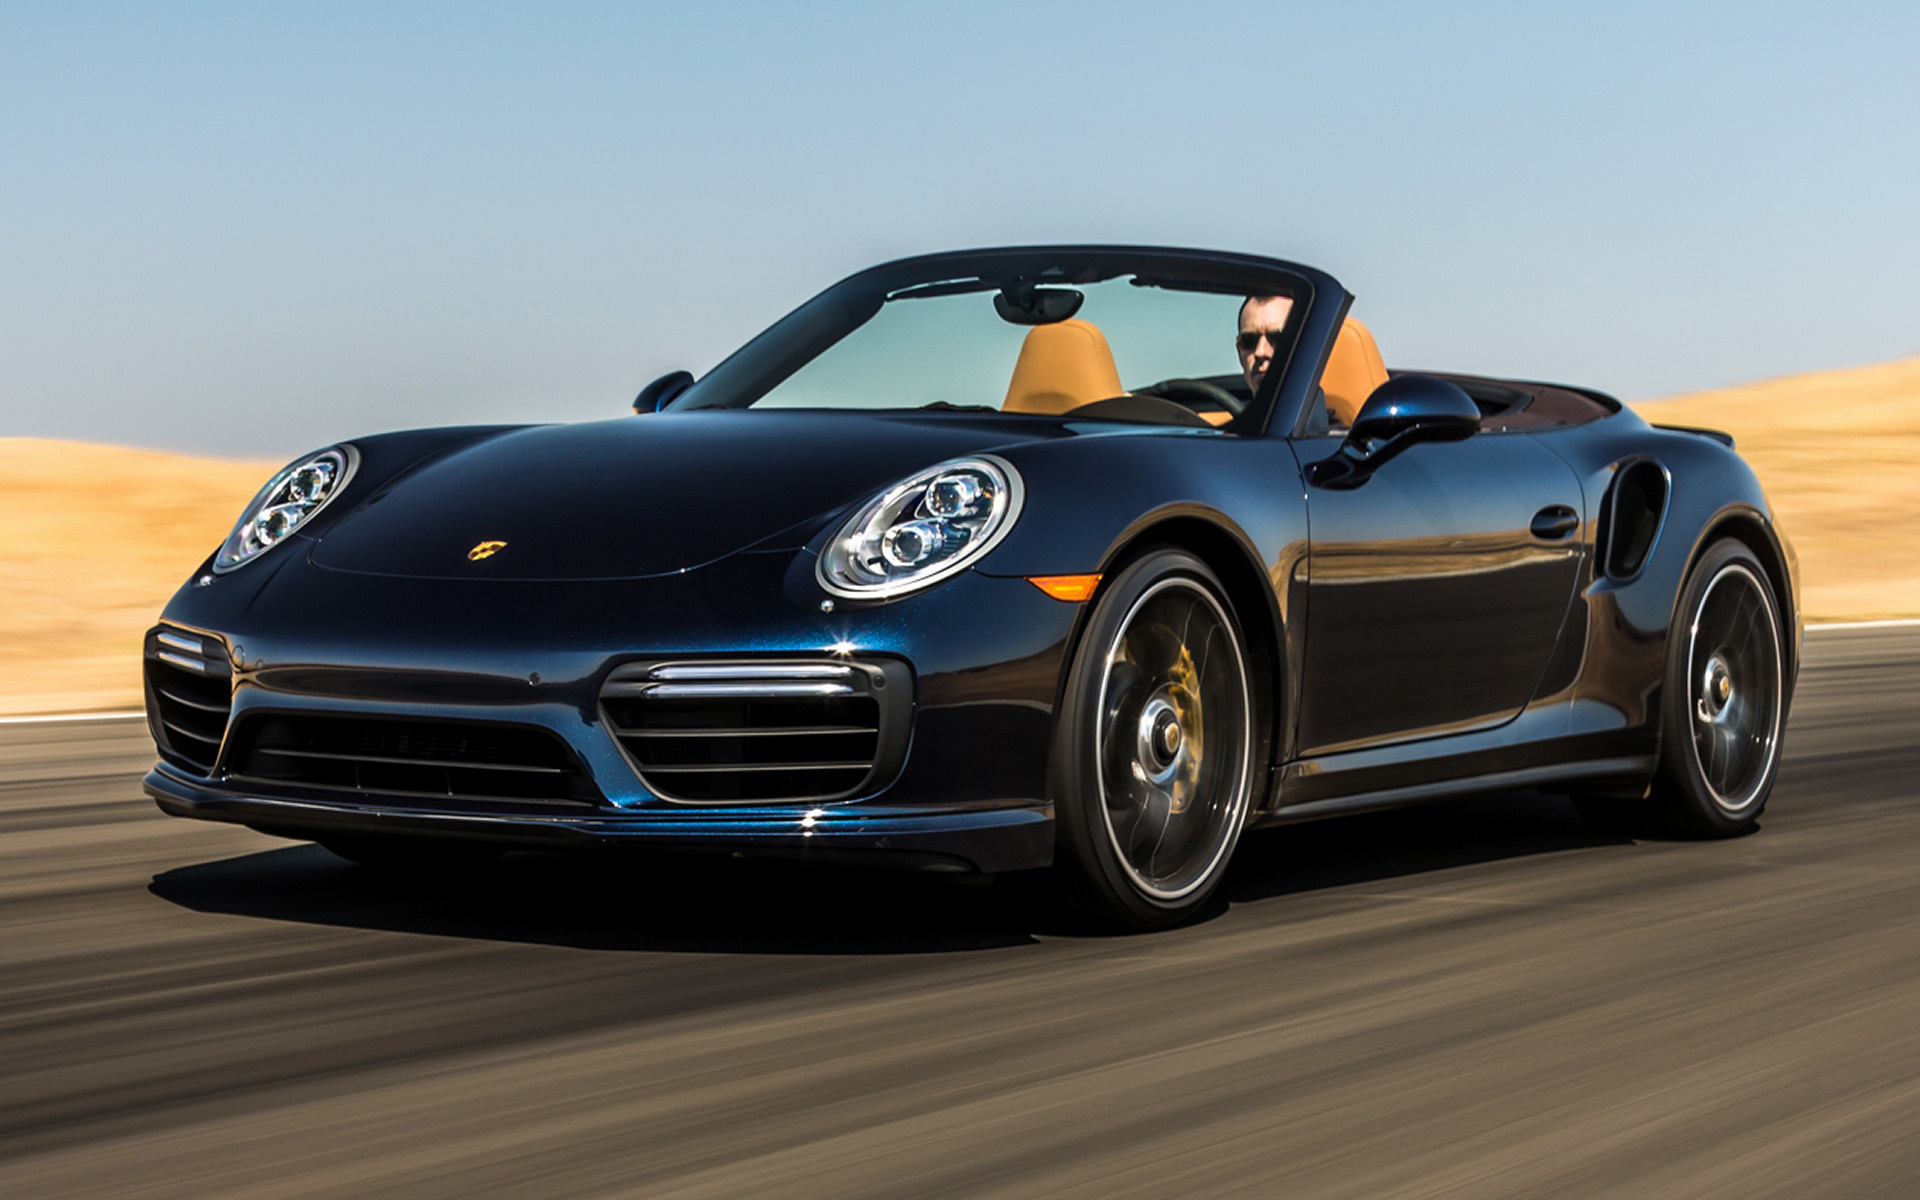 2017 Porsche 911 Turbo S Cabriolet US   Wallpapers and HD Images 1920x1200